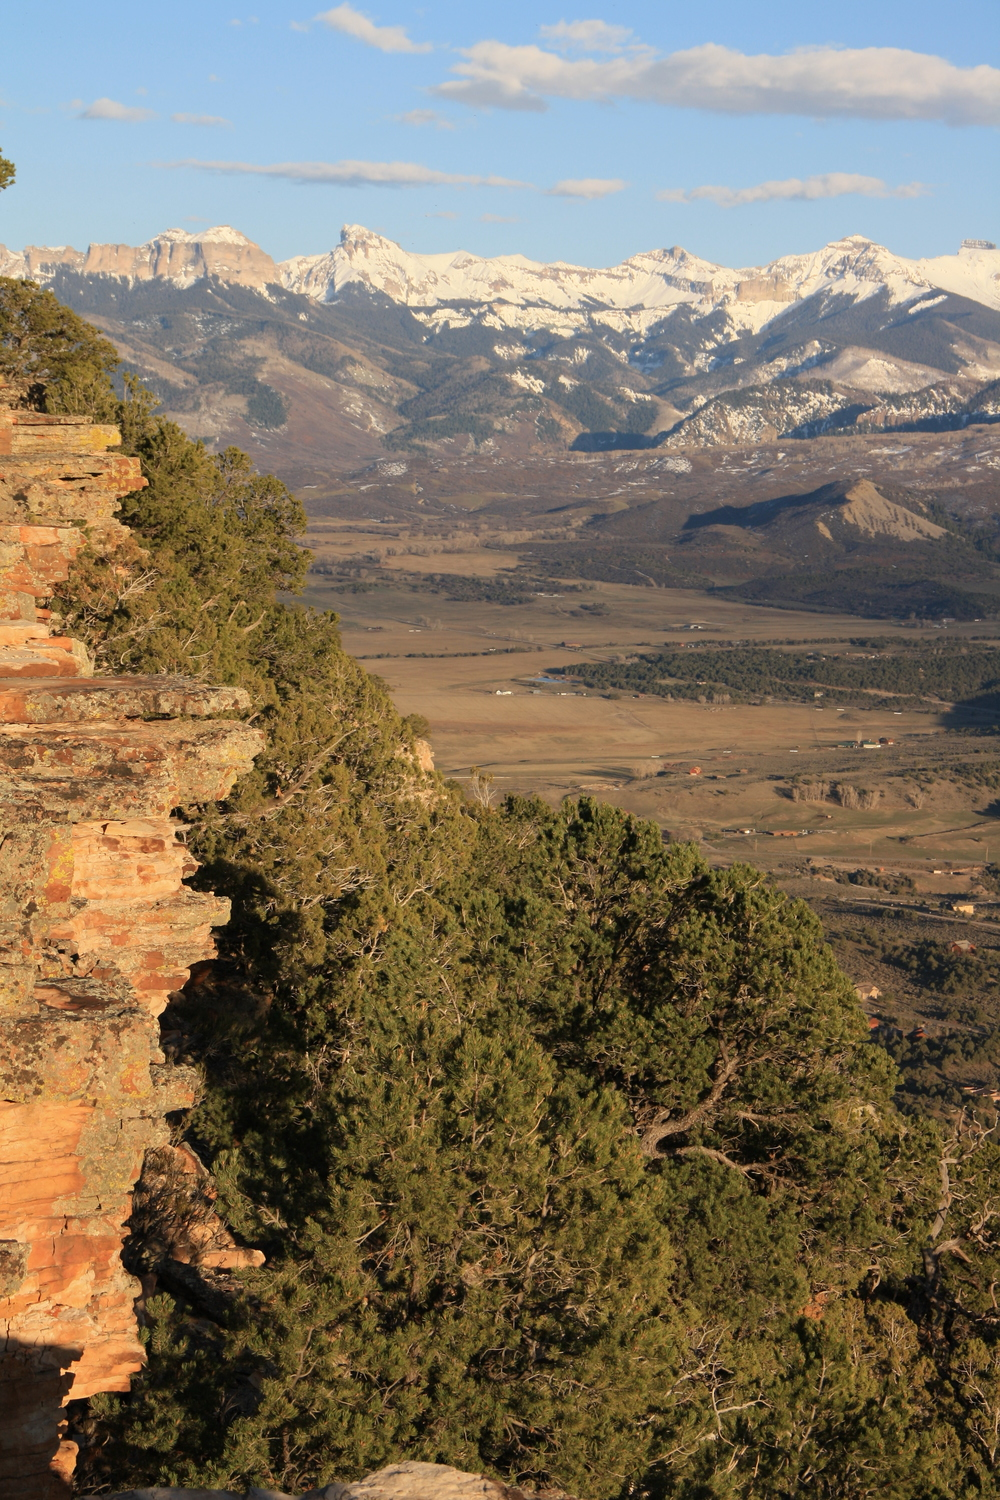 Late afternoon light on the Log Hill Mesa escarpment, overlooking the Uncompahgre Valley and the Cimarrons. An easy walk from Jim and Linda's place to here.